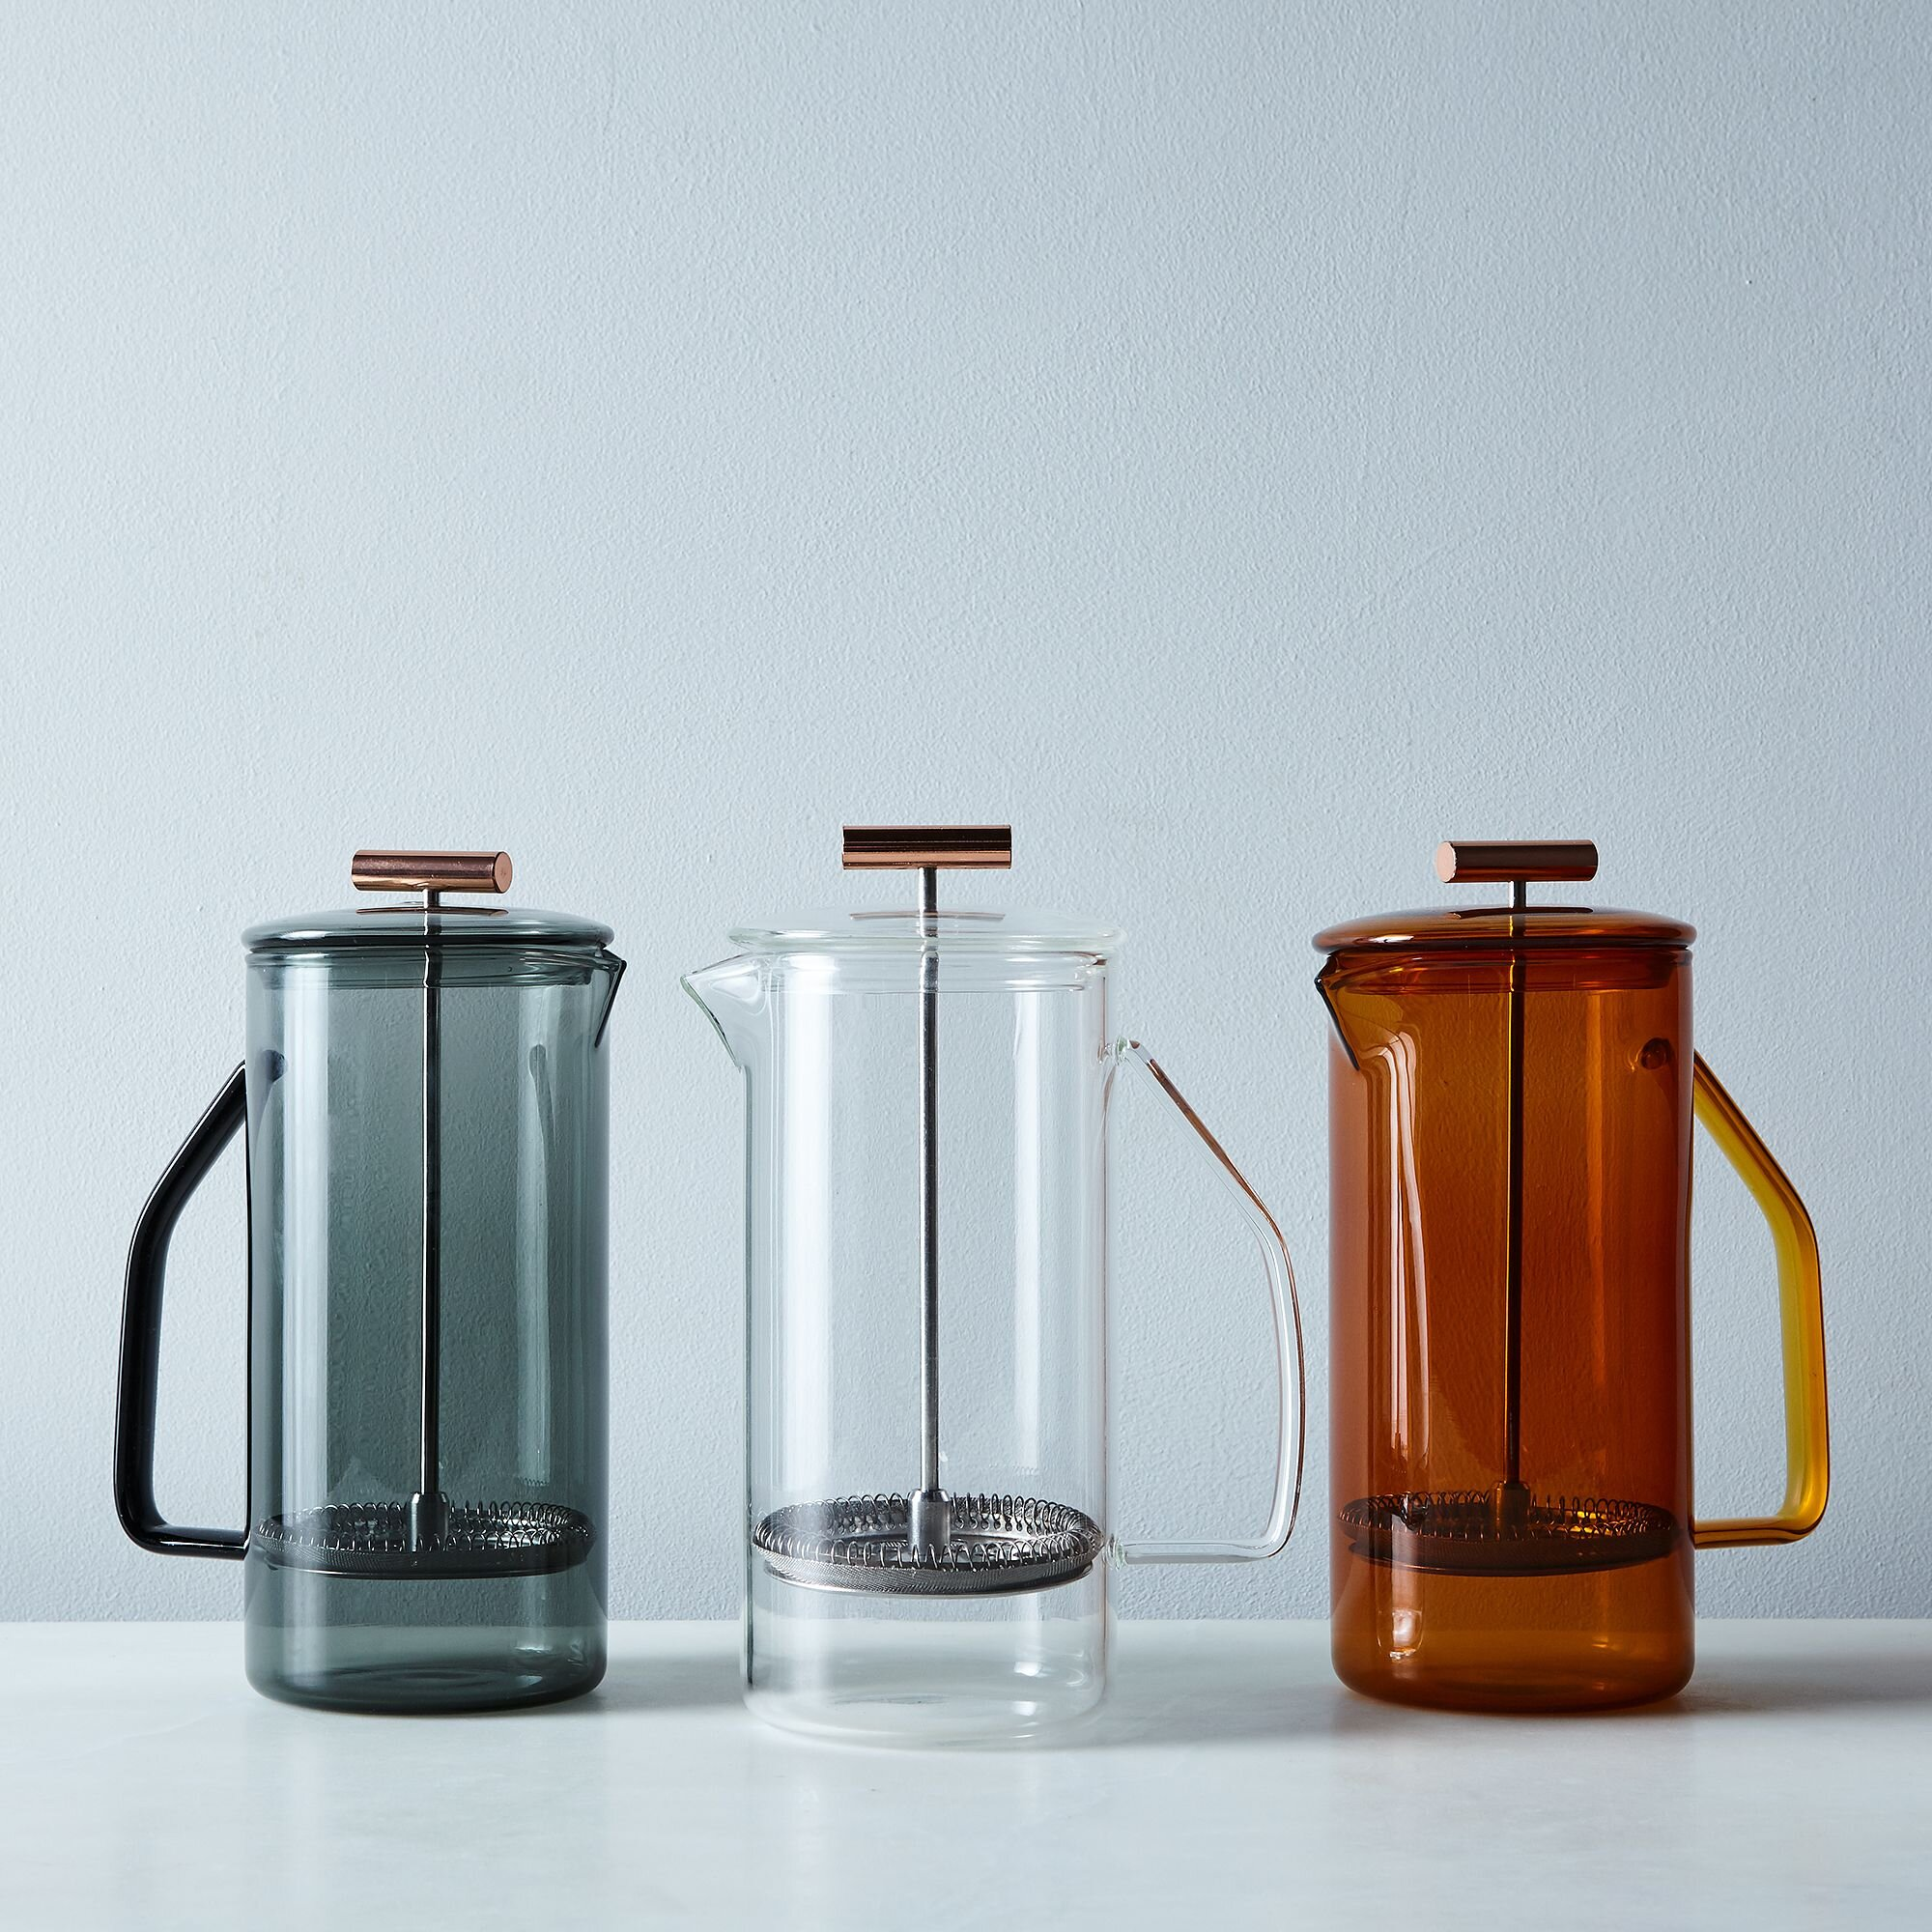 Amber colored glass french press by yield - fall 2019 interior design trend color palette.jpg